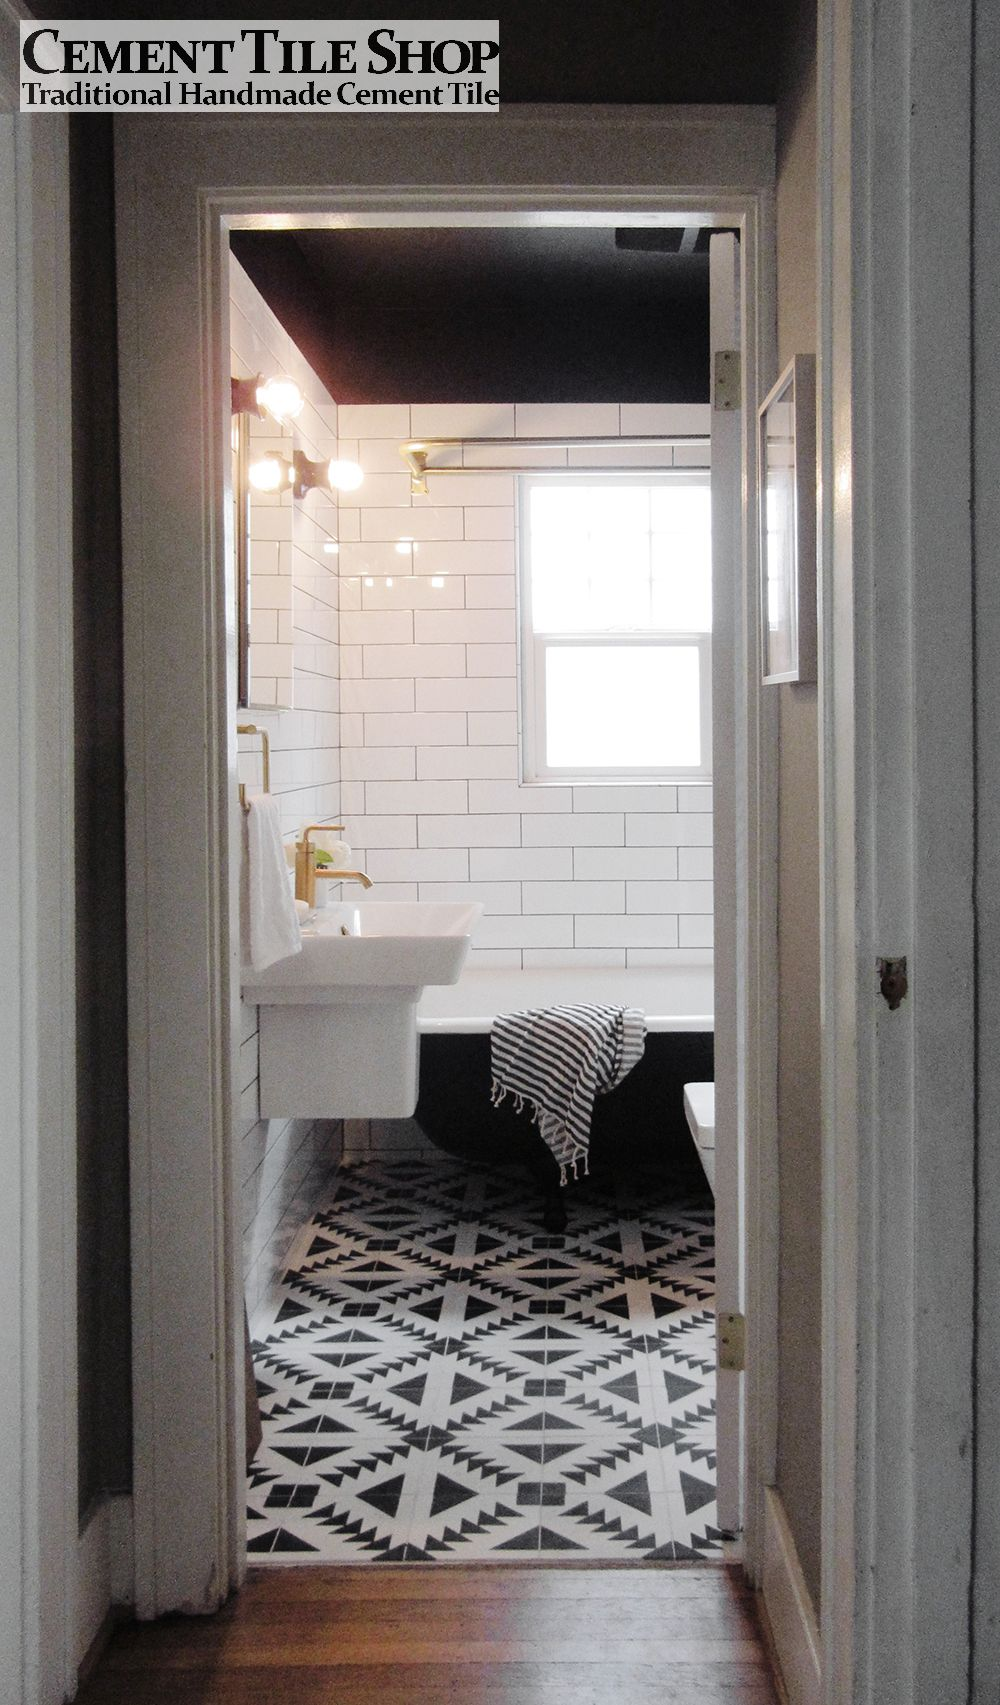 Cement tile shop blog encaustic cement tile Bathroom flooring tile